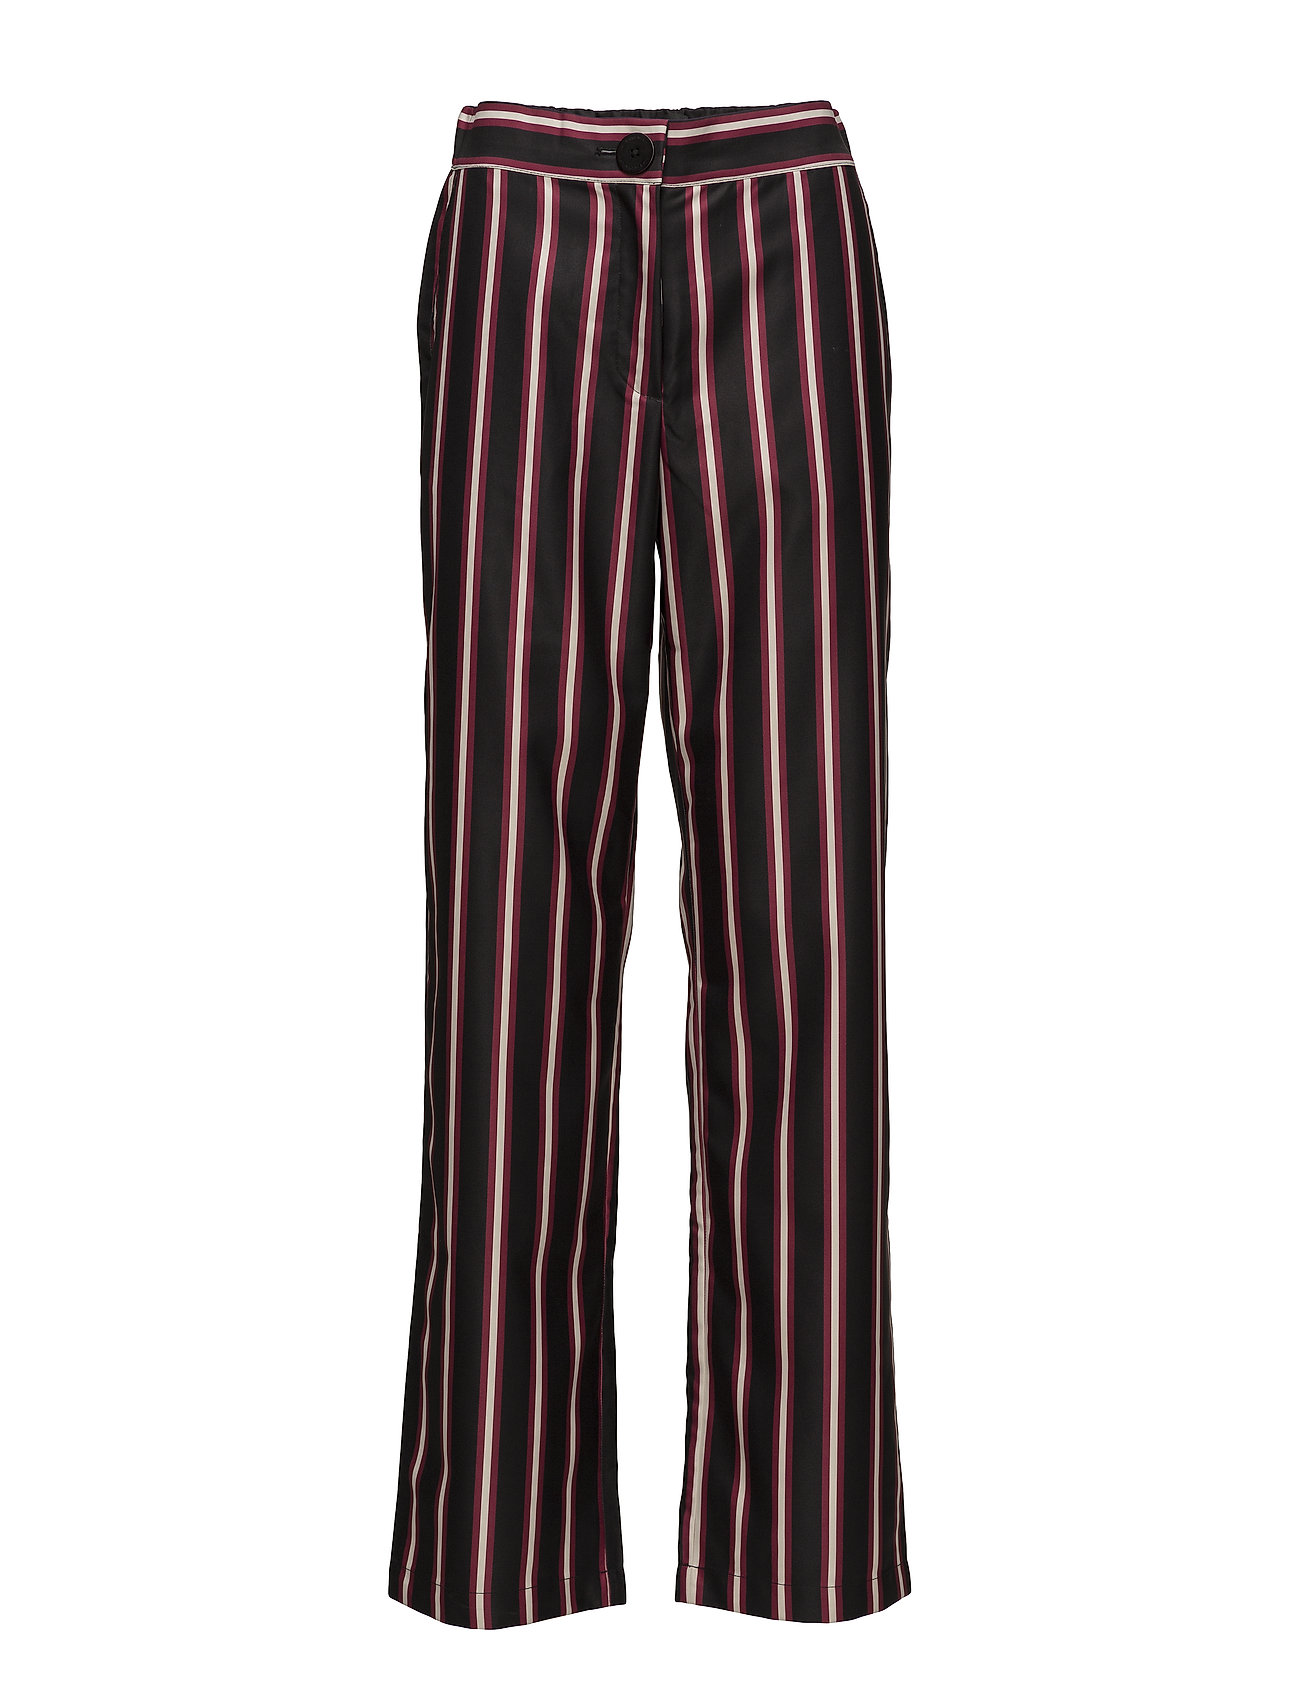 HAN Kjøbenhavn Suited Pants - BLACK STRIPE